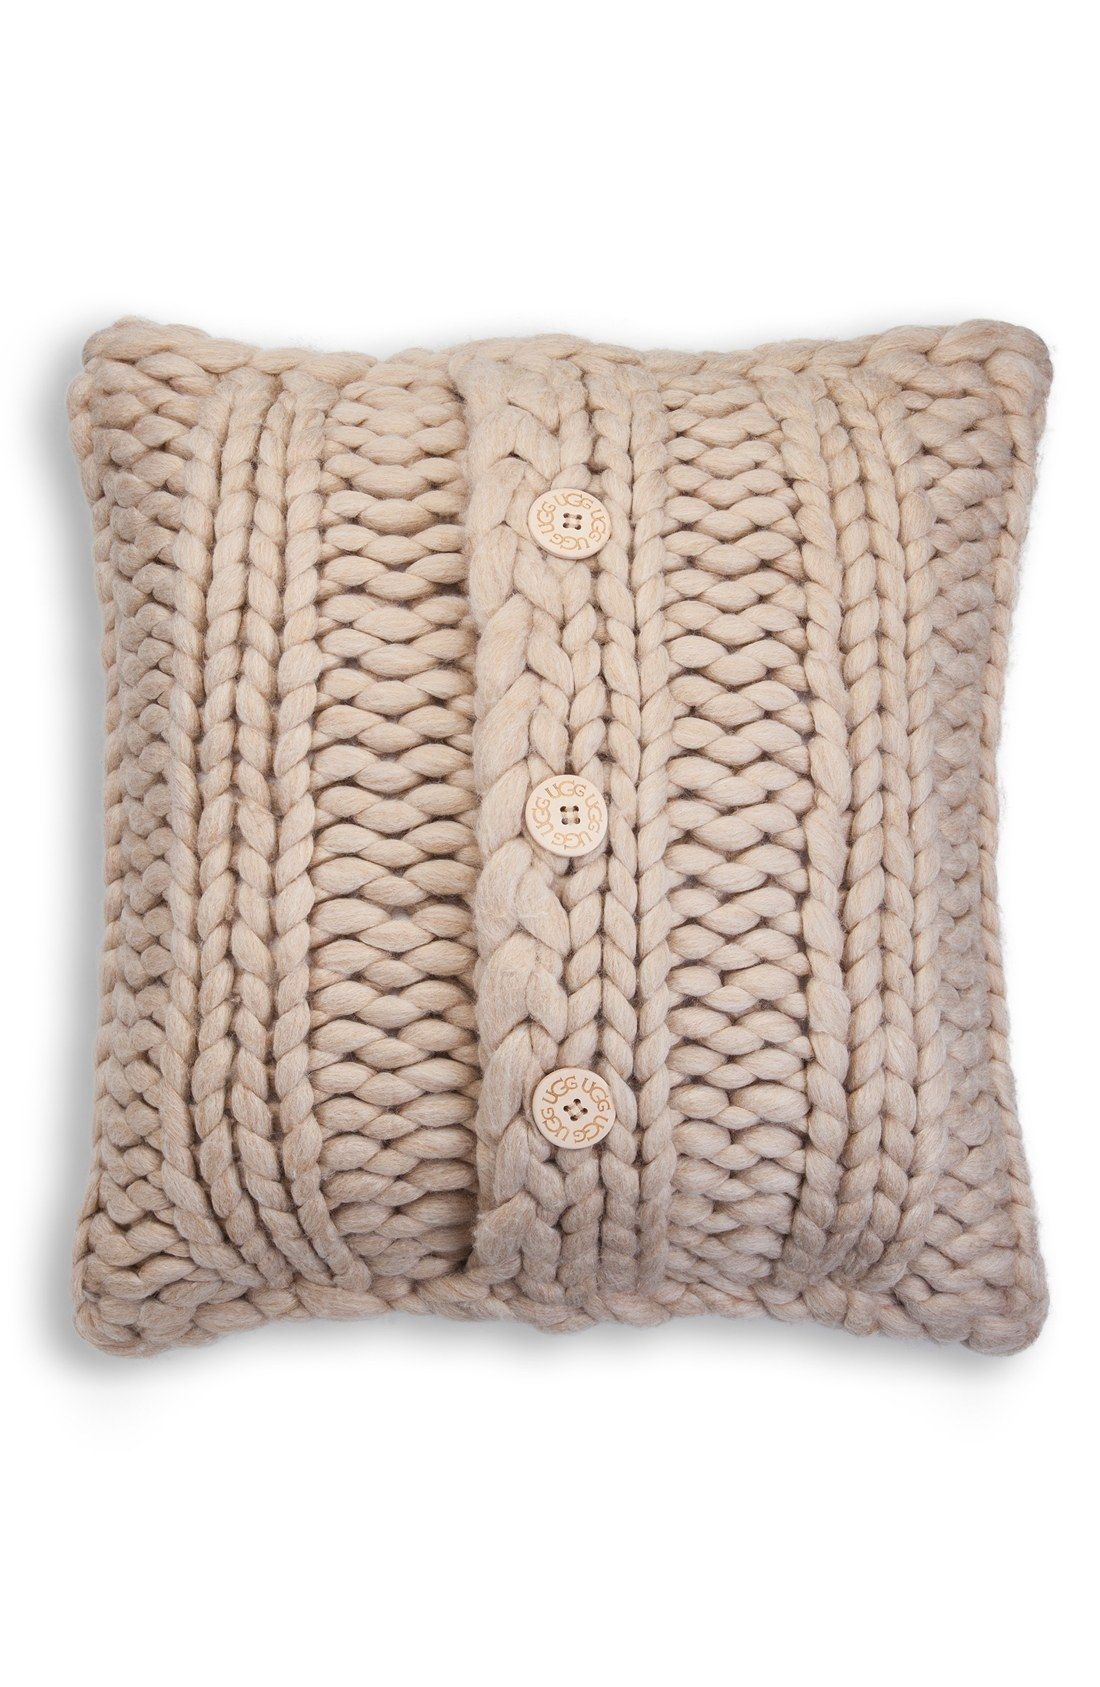 Ugg Oversize Knit Pillow Accent Pillows Living Rooms And Knits